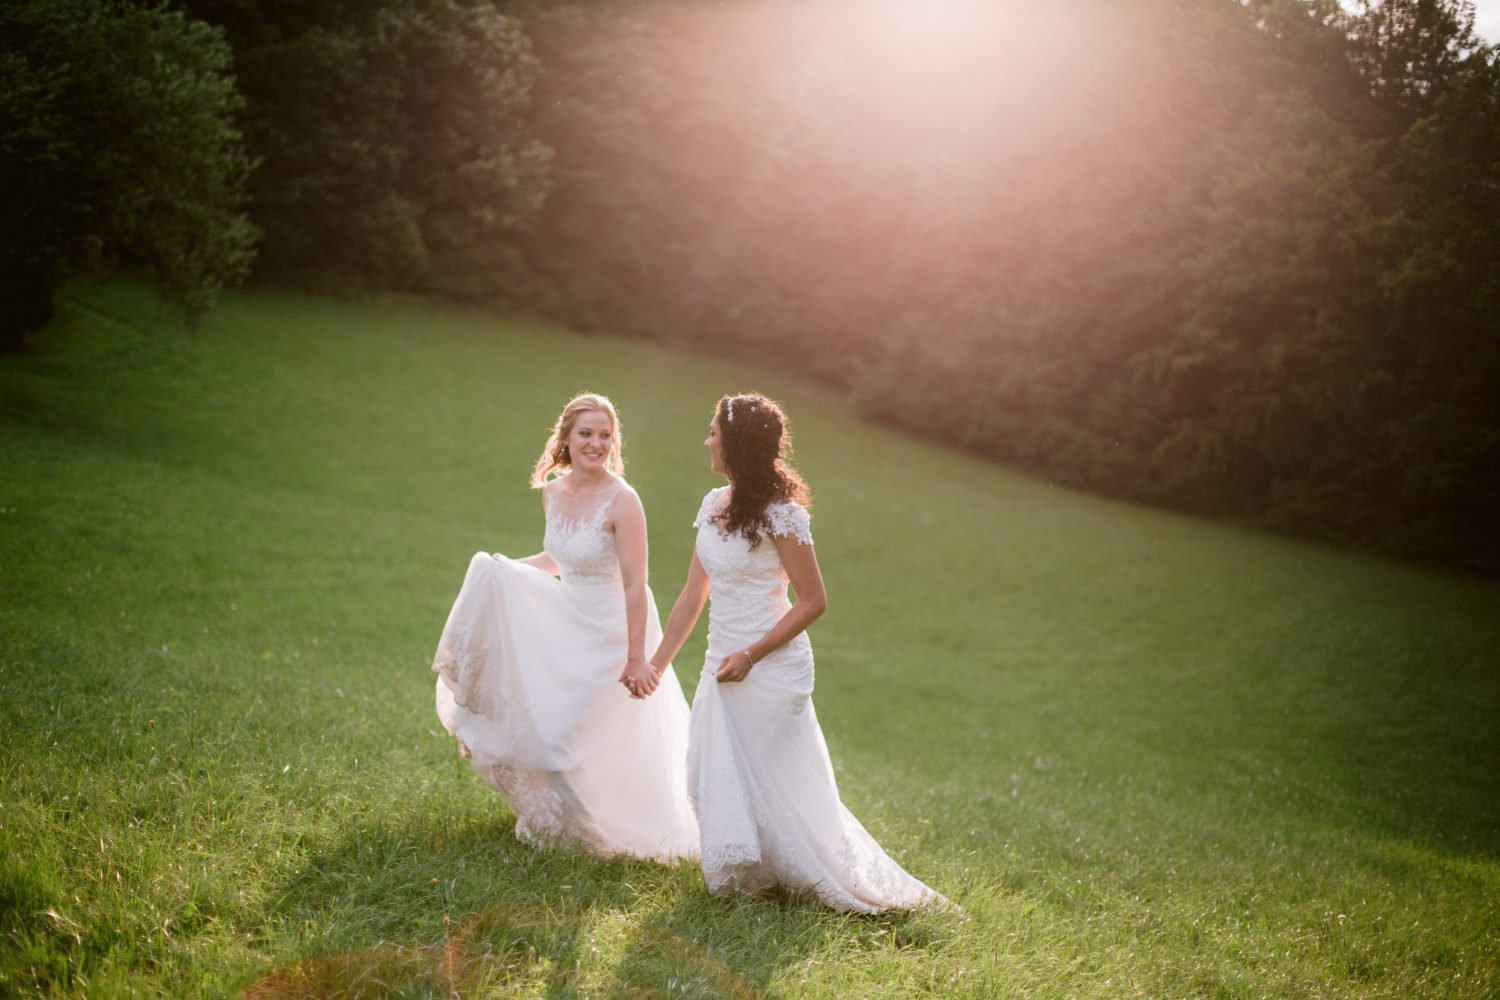 Scotland Lesbian Destination Wedding Photographer | Ceranna Photography | Scottish Wedding Photographer